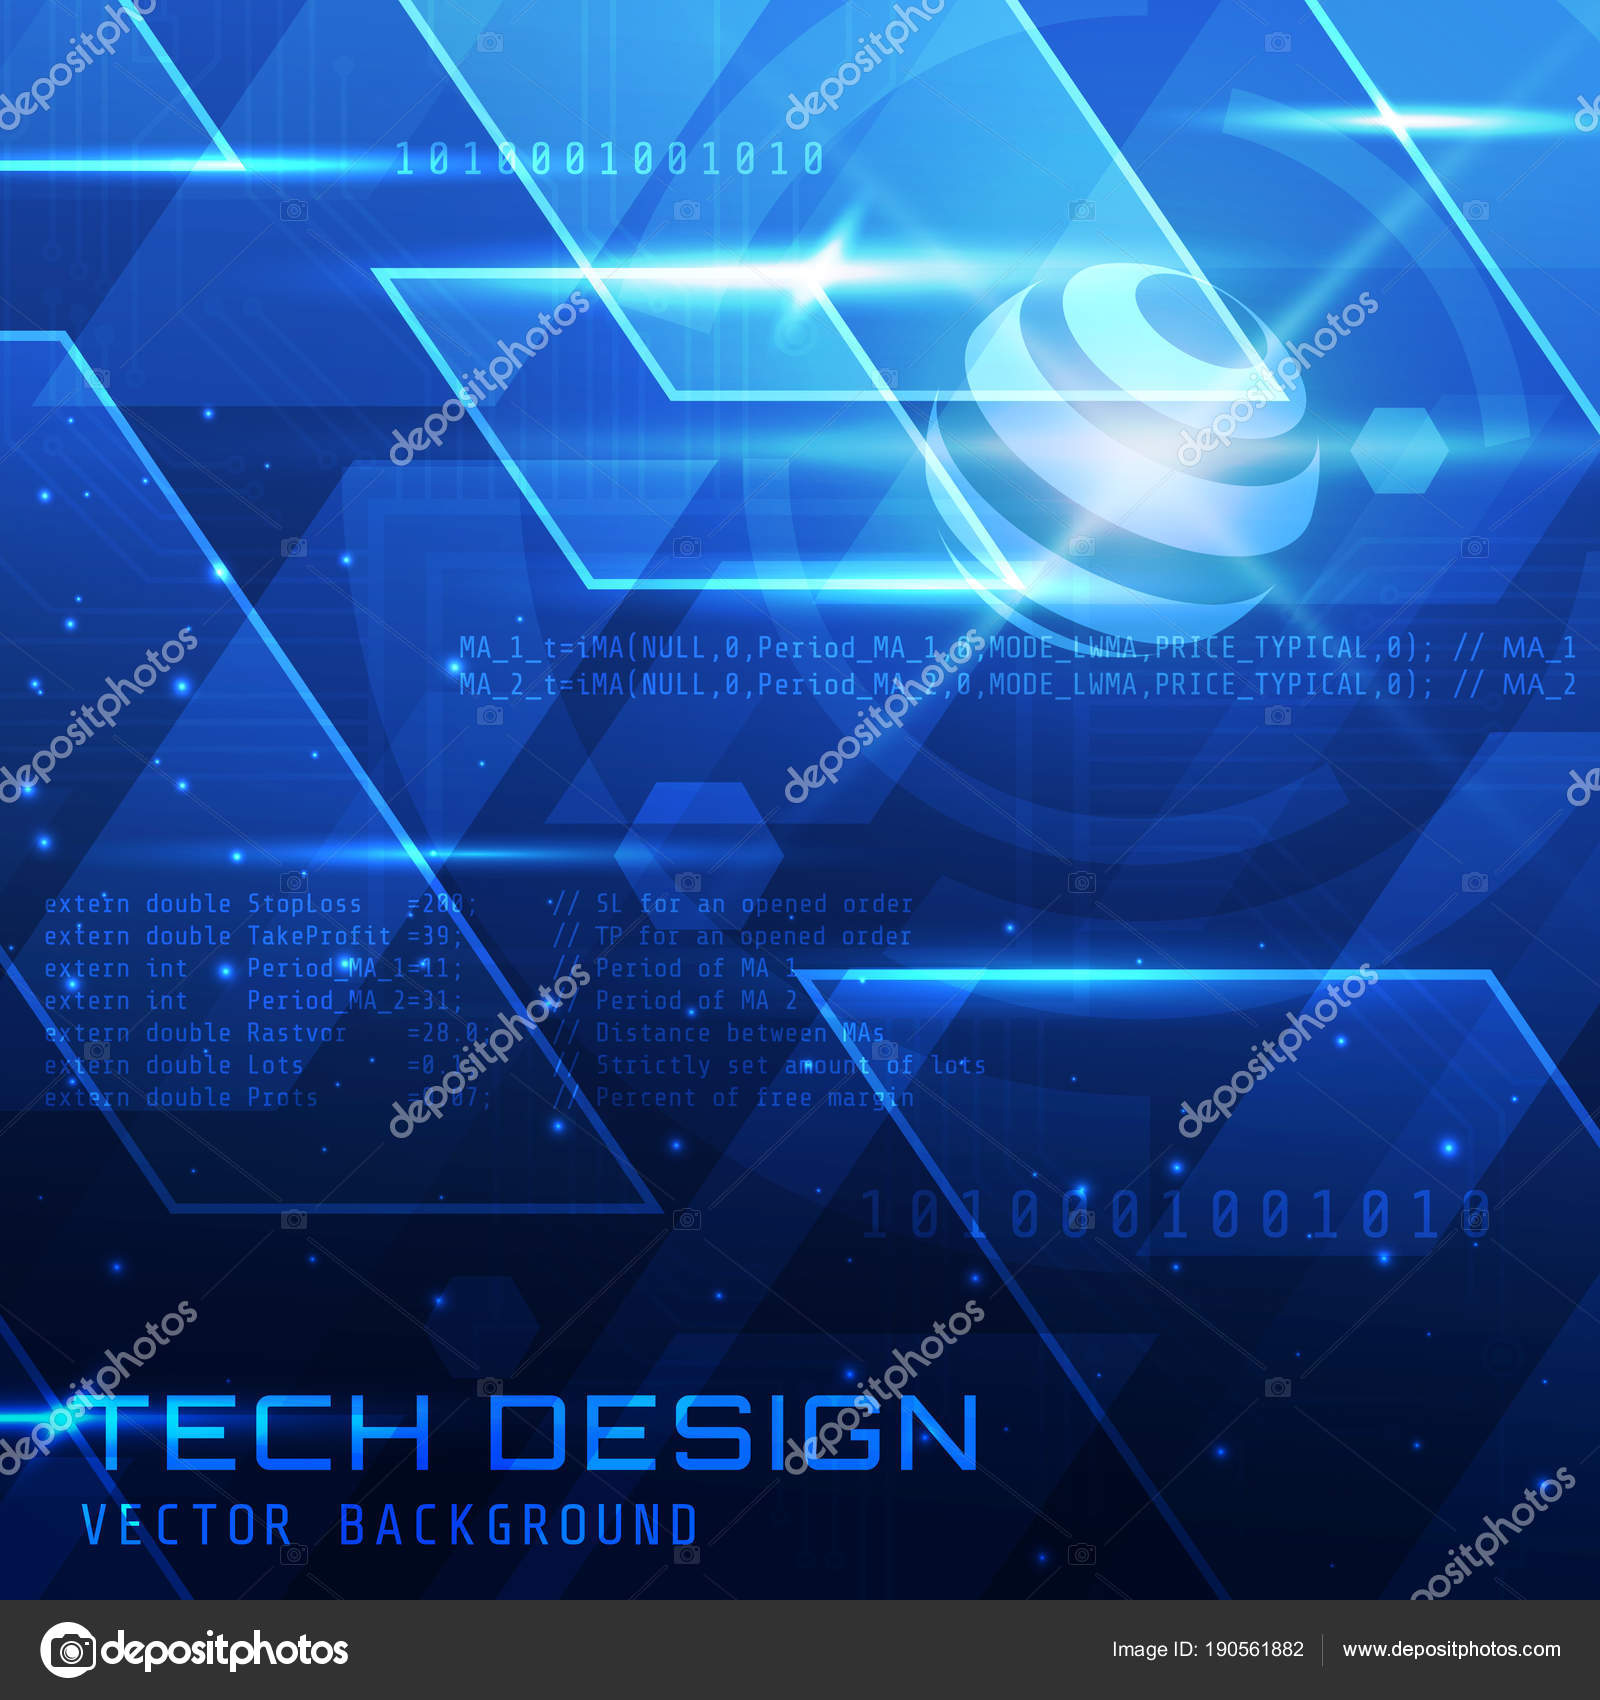 Wallpapers Tech Hd Ultra Abstract Sci Technology Wallpaper Suitable Application Desktop Banner Background Stock Vector C Naulicreative 190561882